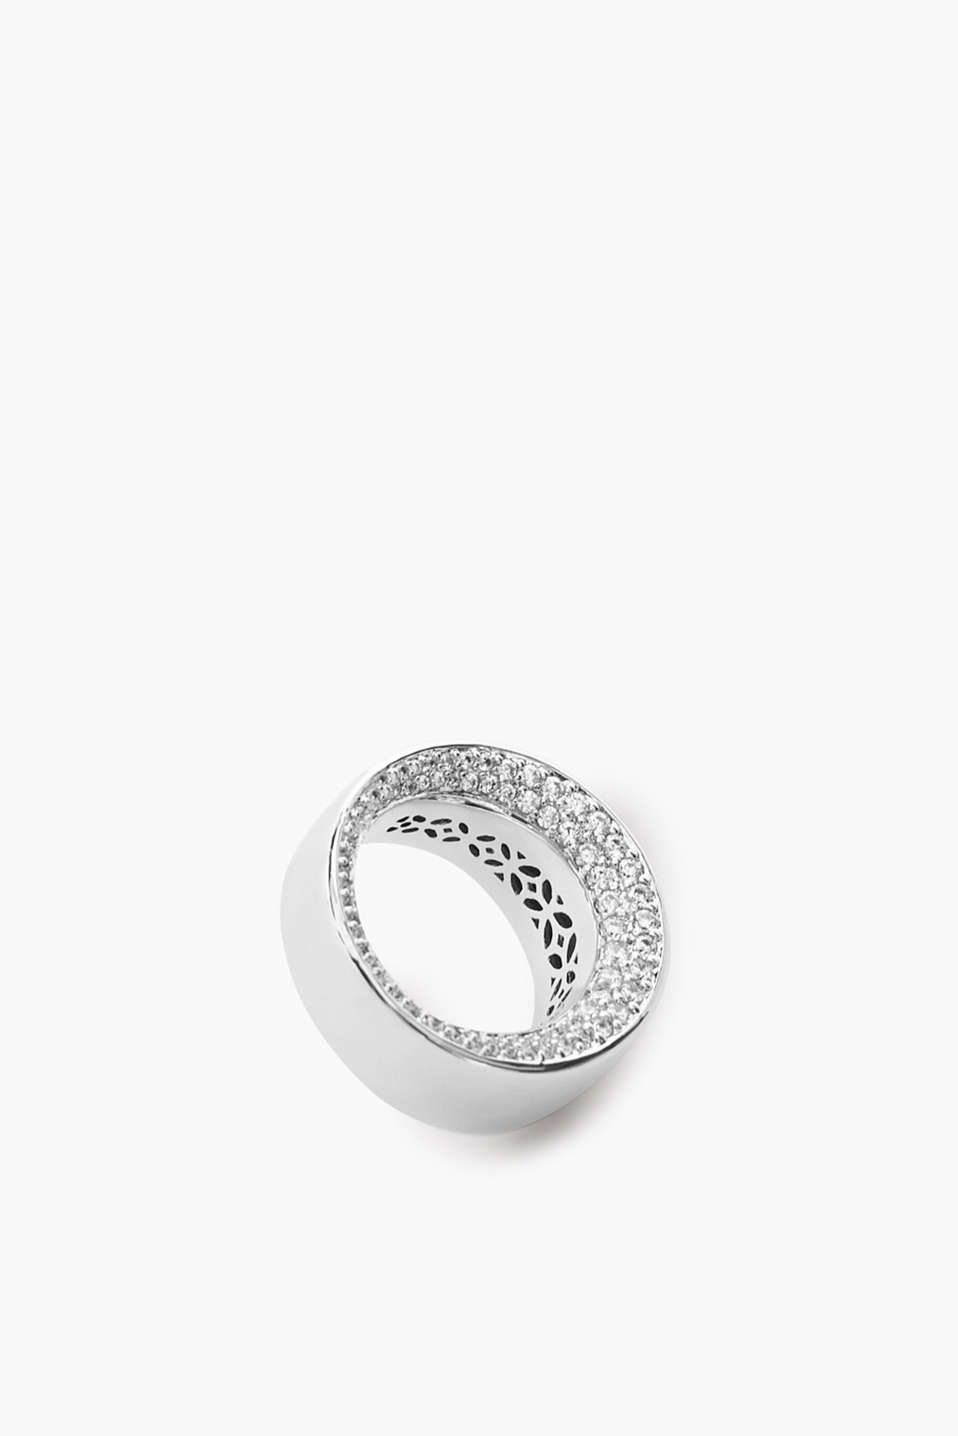 Polished metal ring with zirconia stones